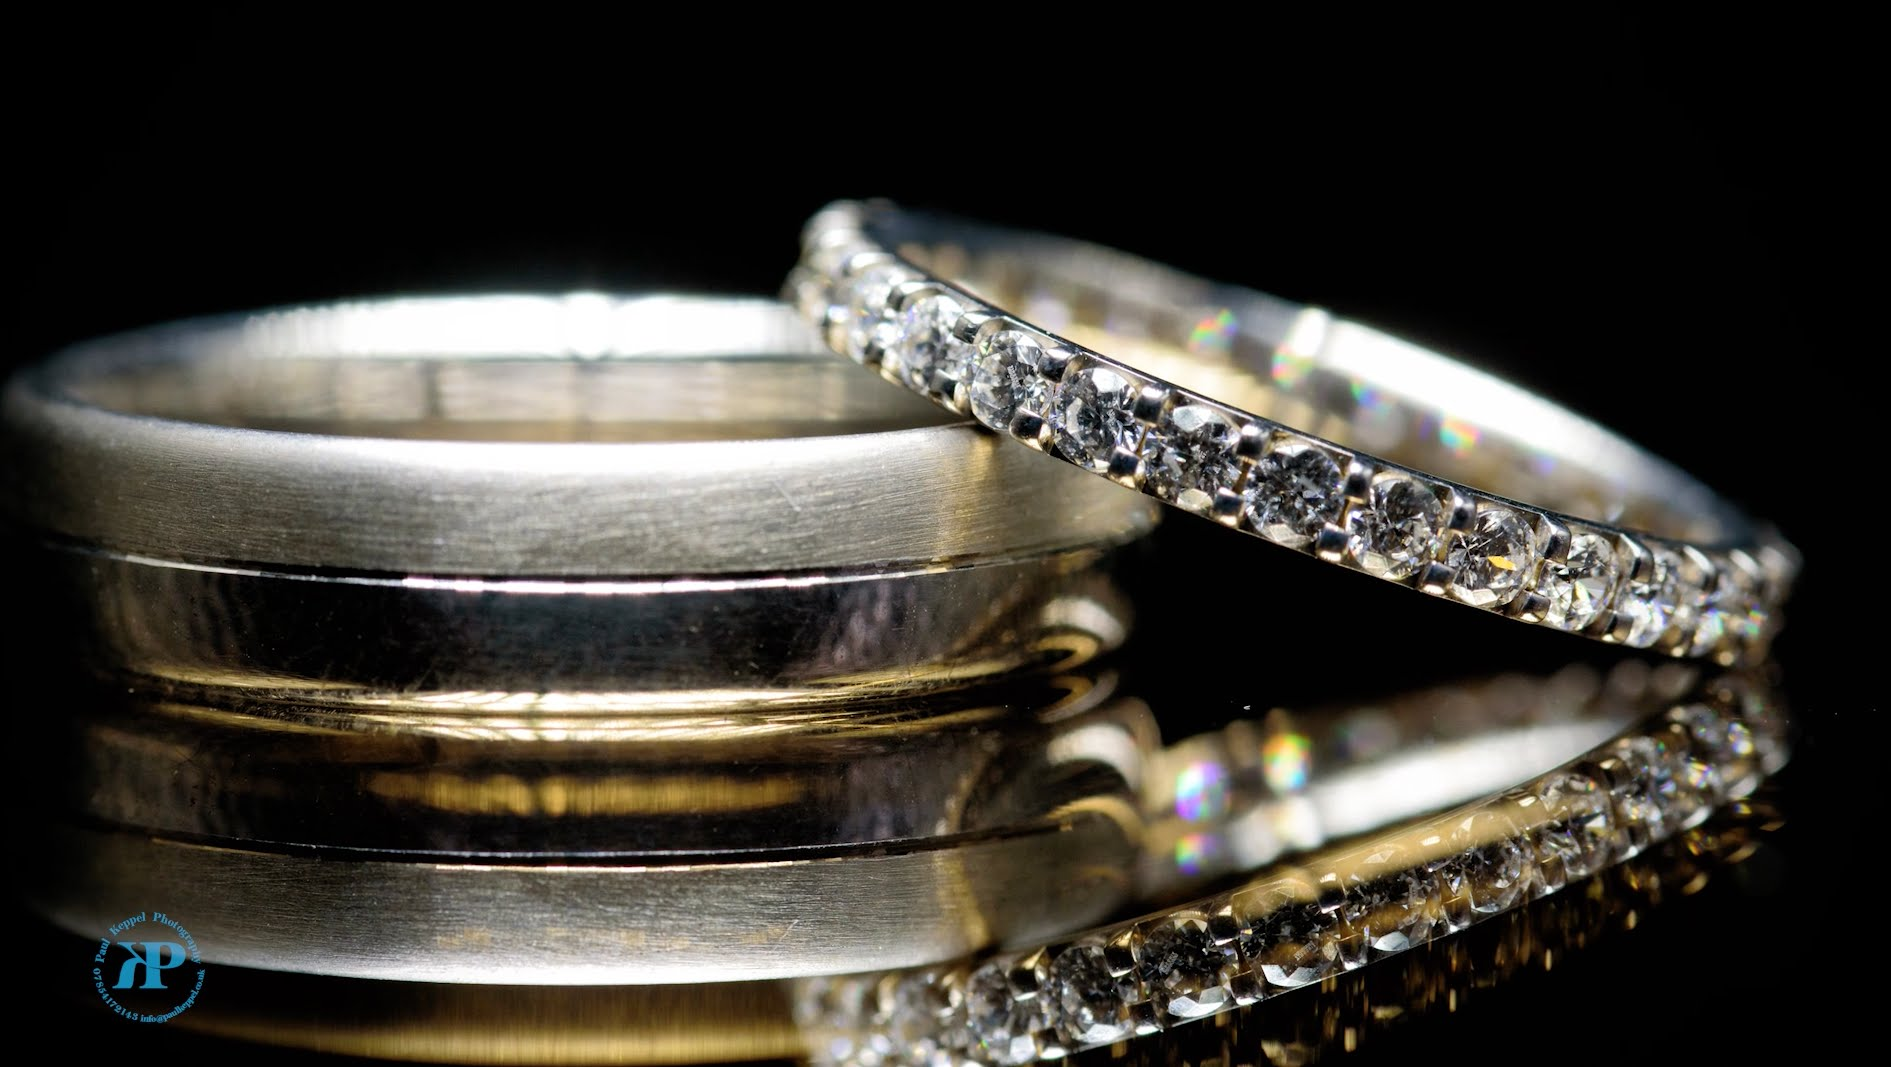 Simple And Inexpensive A Great Way To Shoot Wedding Rings